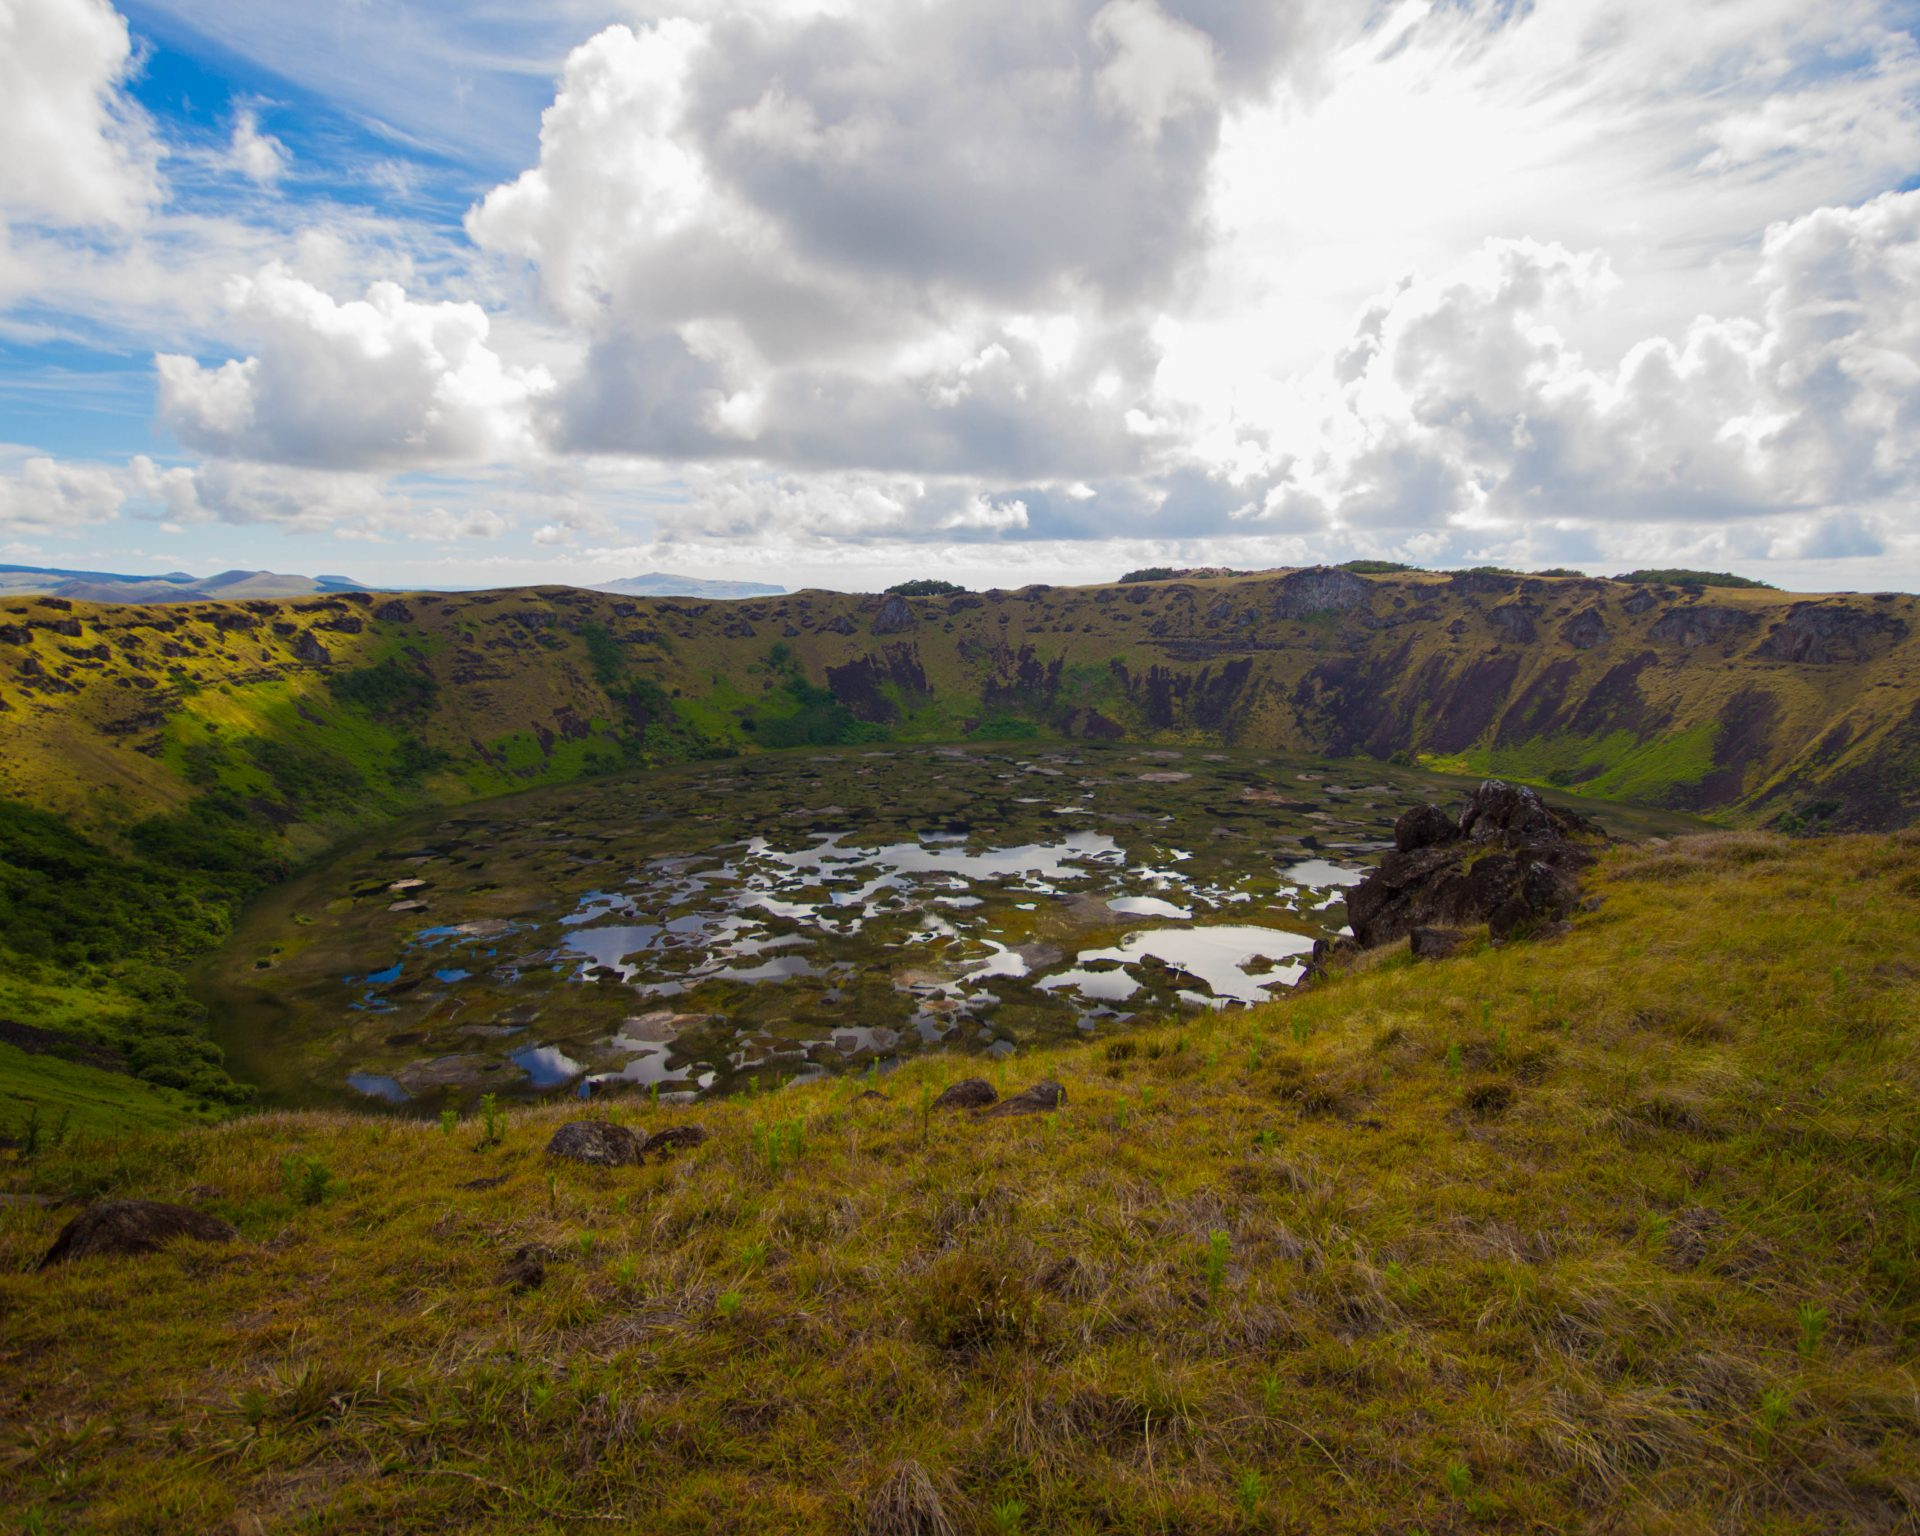 A colourful marsh reflects the clouds within a volcanic crater surrounded by lush green cliffs